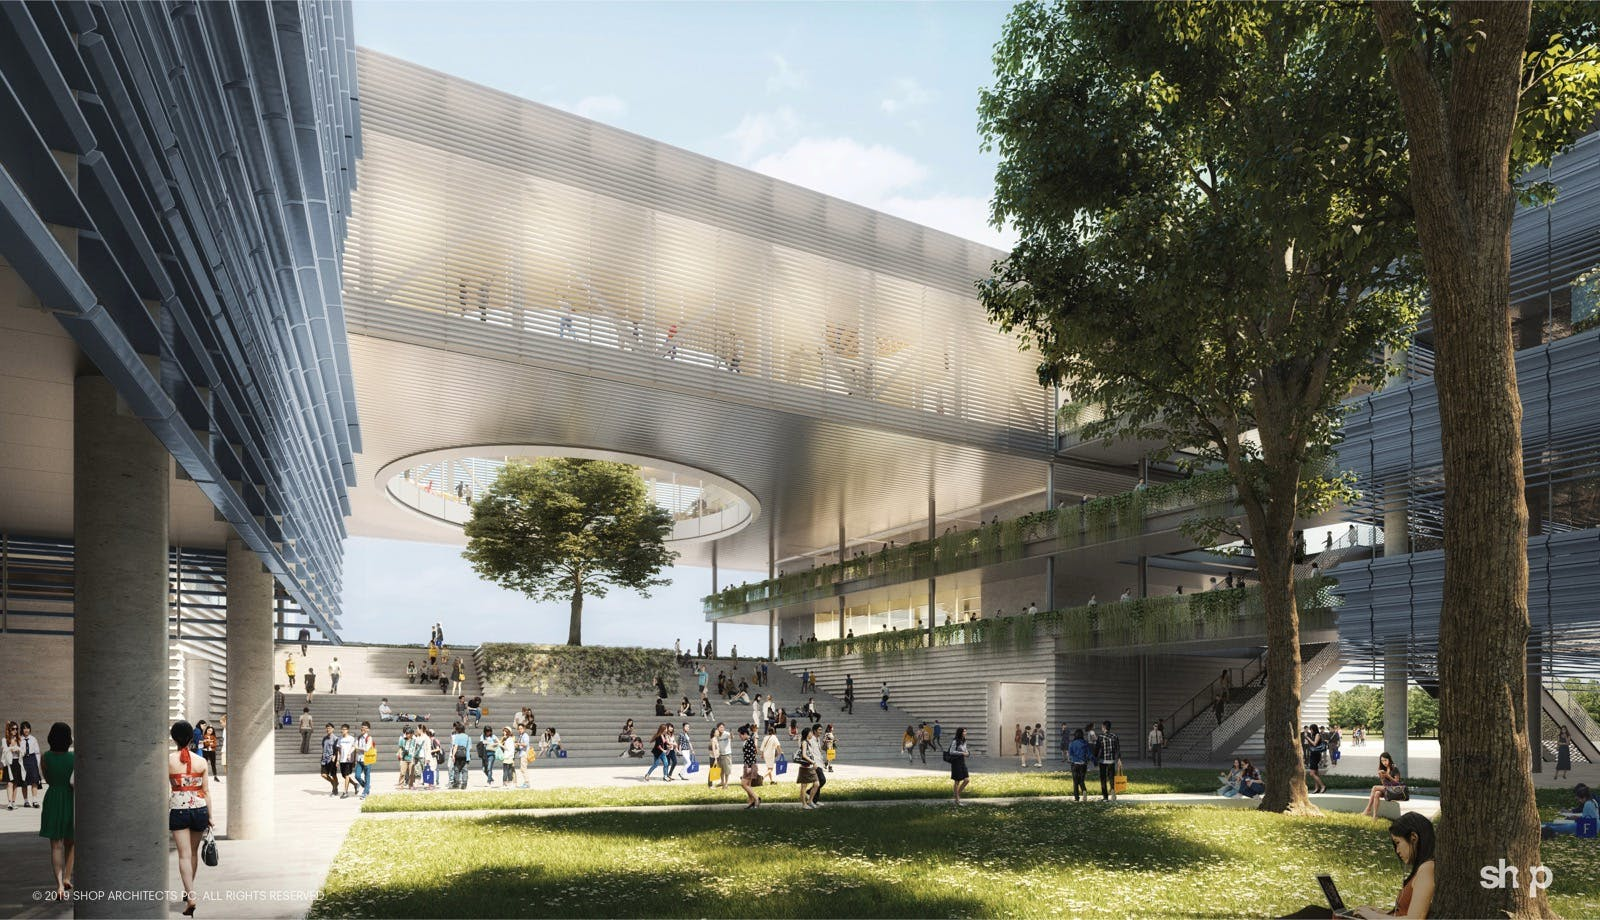 First Phase Of Shop Architects Fulbright University Vietnam Masterplan Breaks Ground News Archinect